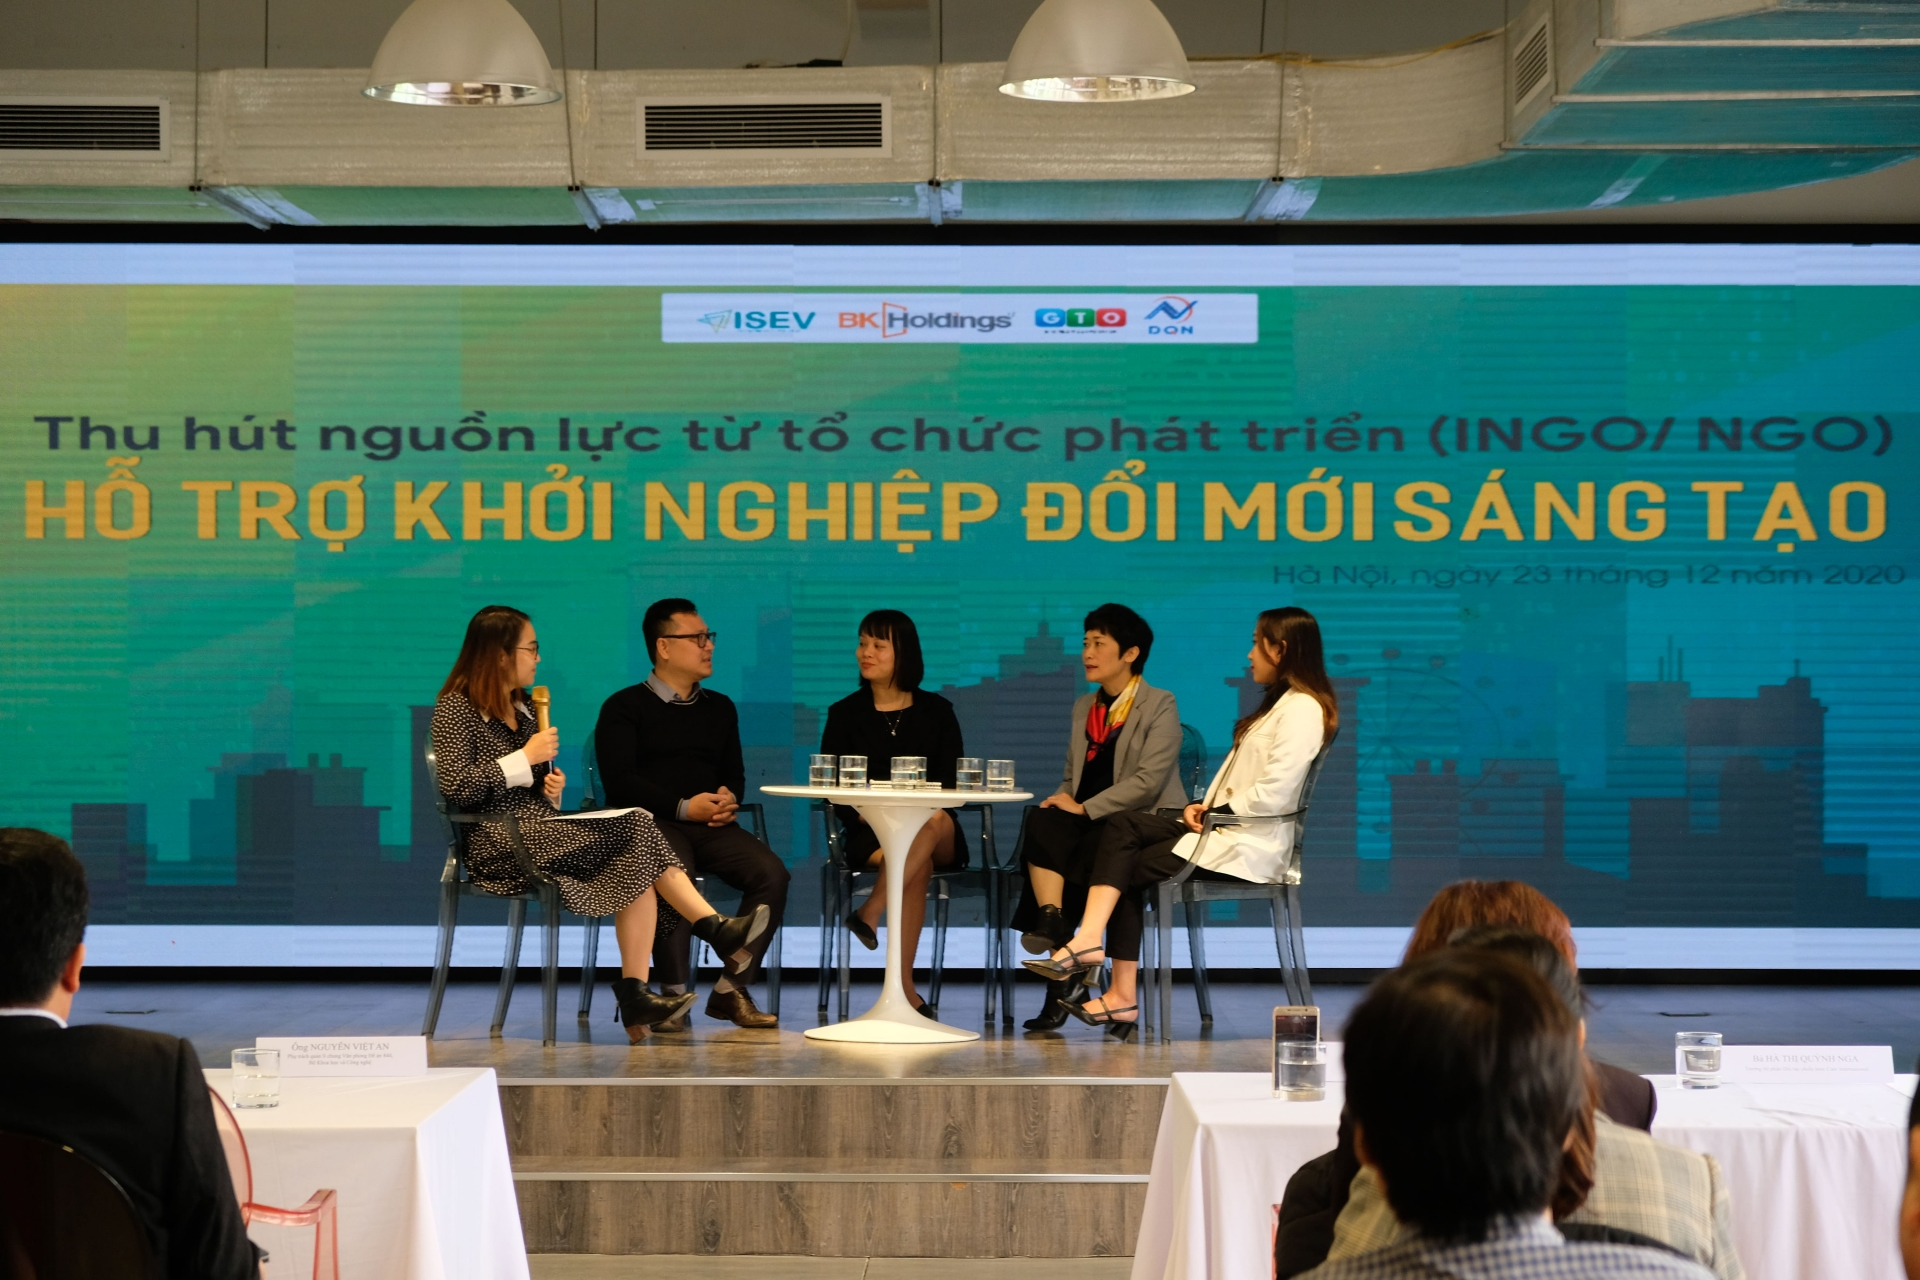 Working with NGOs a fast rising option for startups to mobilise capital